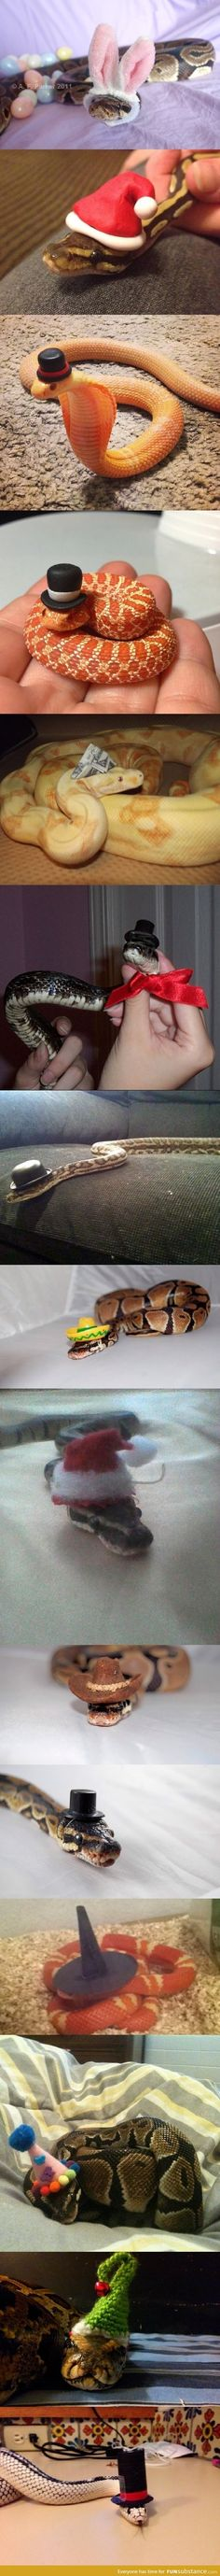 Snakes with hats.my snake is going to hate me. Animals And Pets, Baby Animals, Funny Animals, Cute Animals, Cute Creatures, Beautiful Creatures, Animals Beautiful, Cute Reptiles, Reptiles And Amphibians